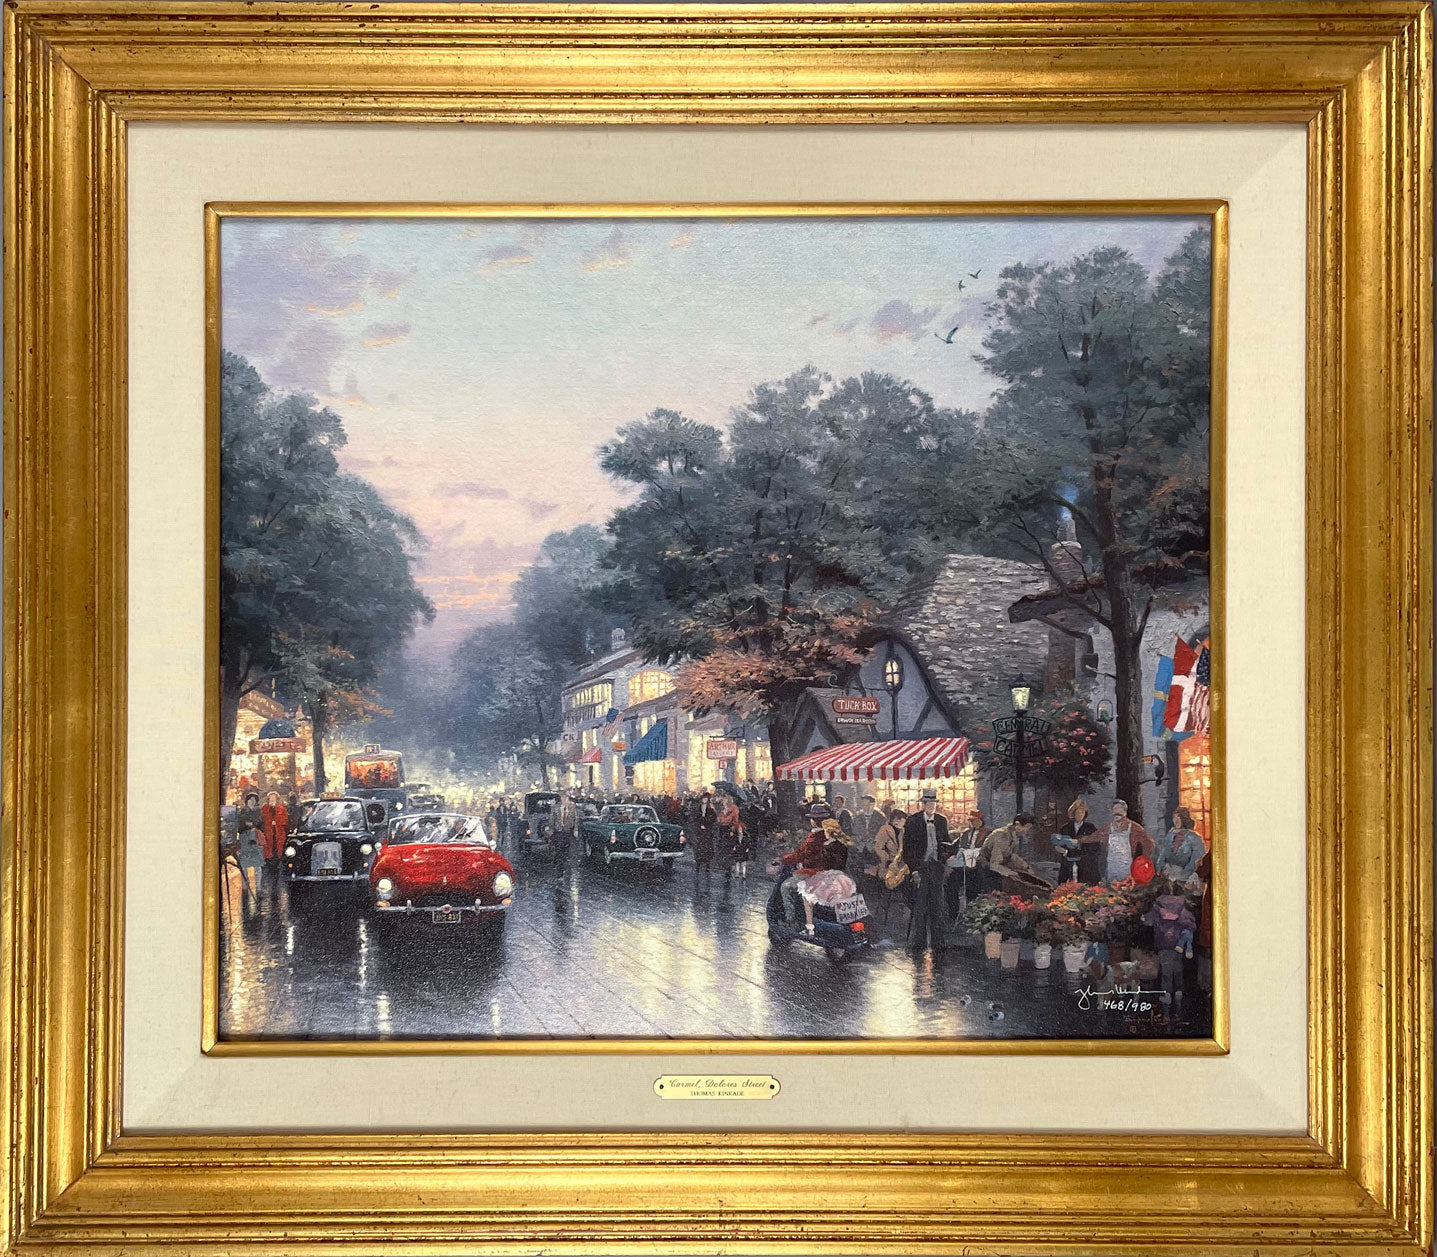 Carmel, Dolores Street giclée on canvas by Thomas Kinkade, signed